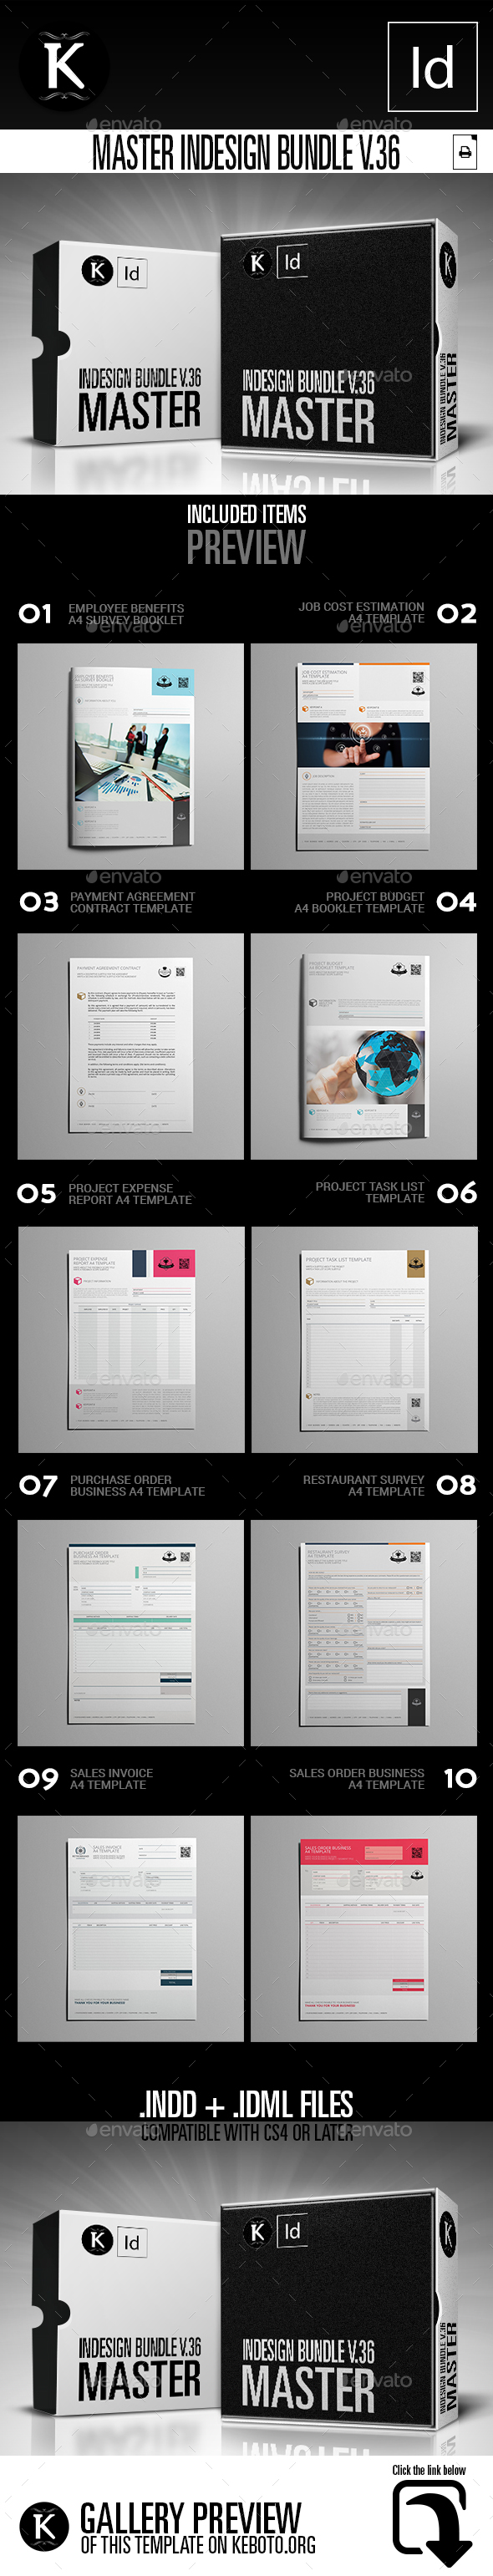 GraphicRiver Master inDesign Bundle v.36 21076897